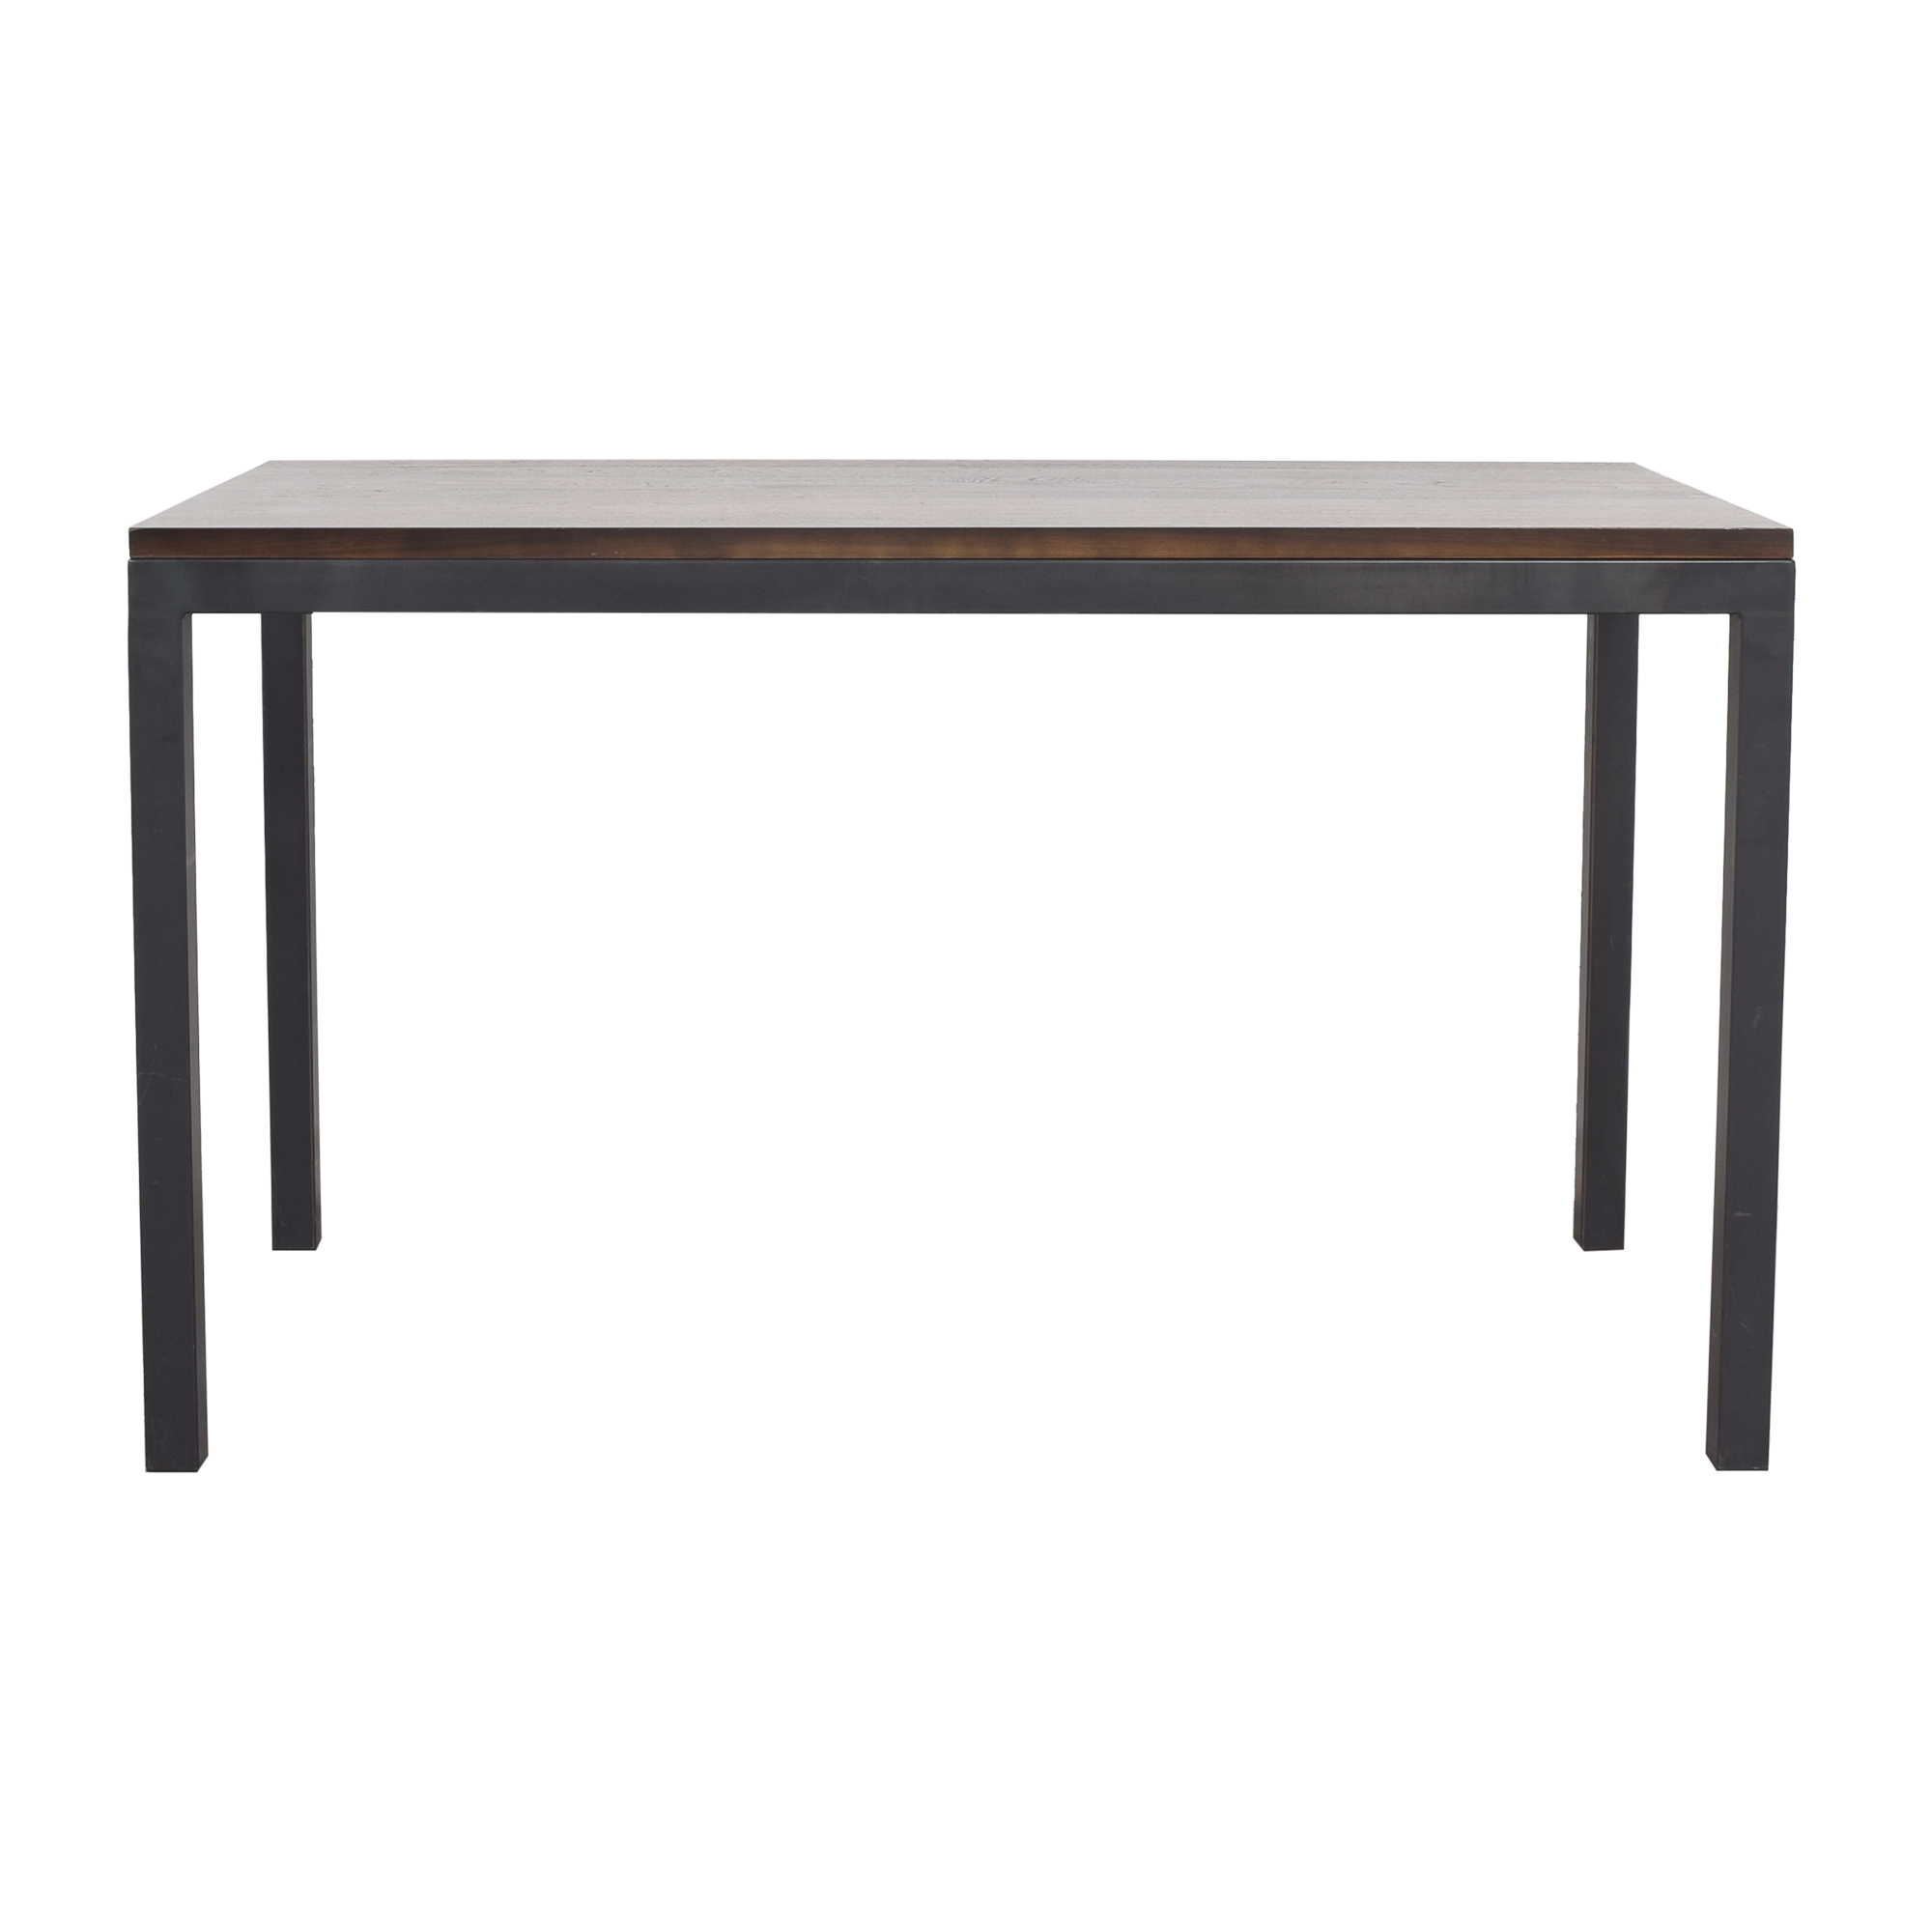 Room & Board Room & Board Parsons Counter Table brown & black